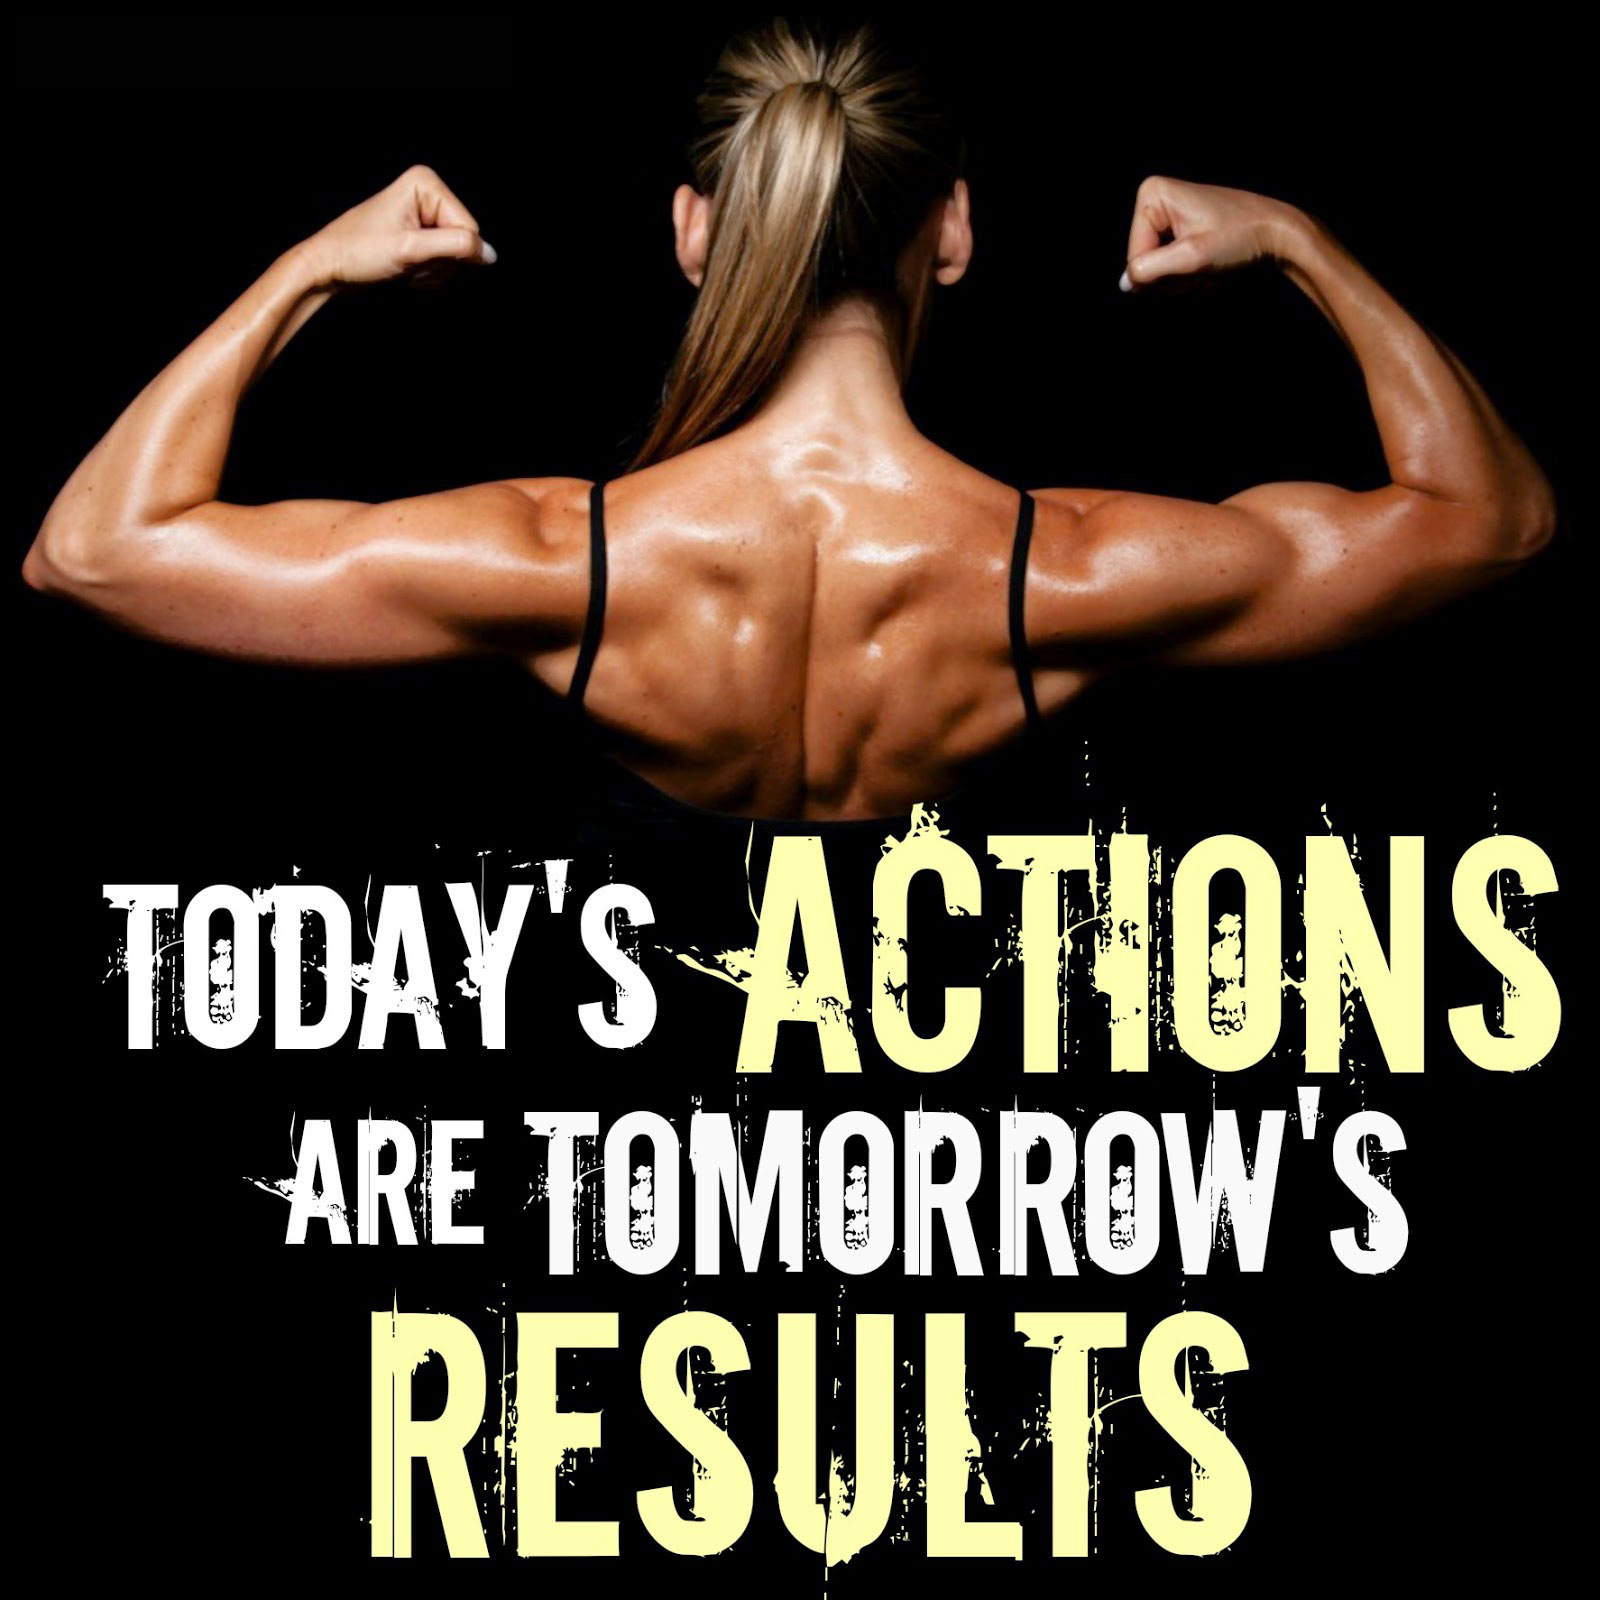 Motivational Inspirational Quotes: Gym Therapy Quotes. QuotesGram